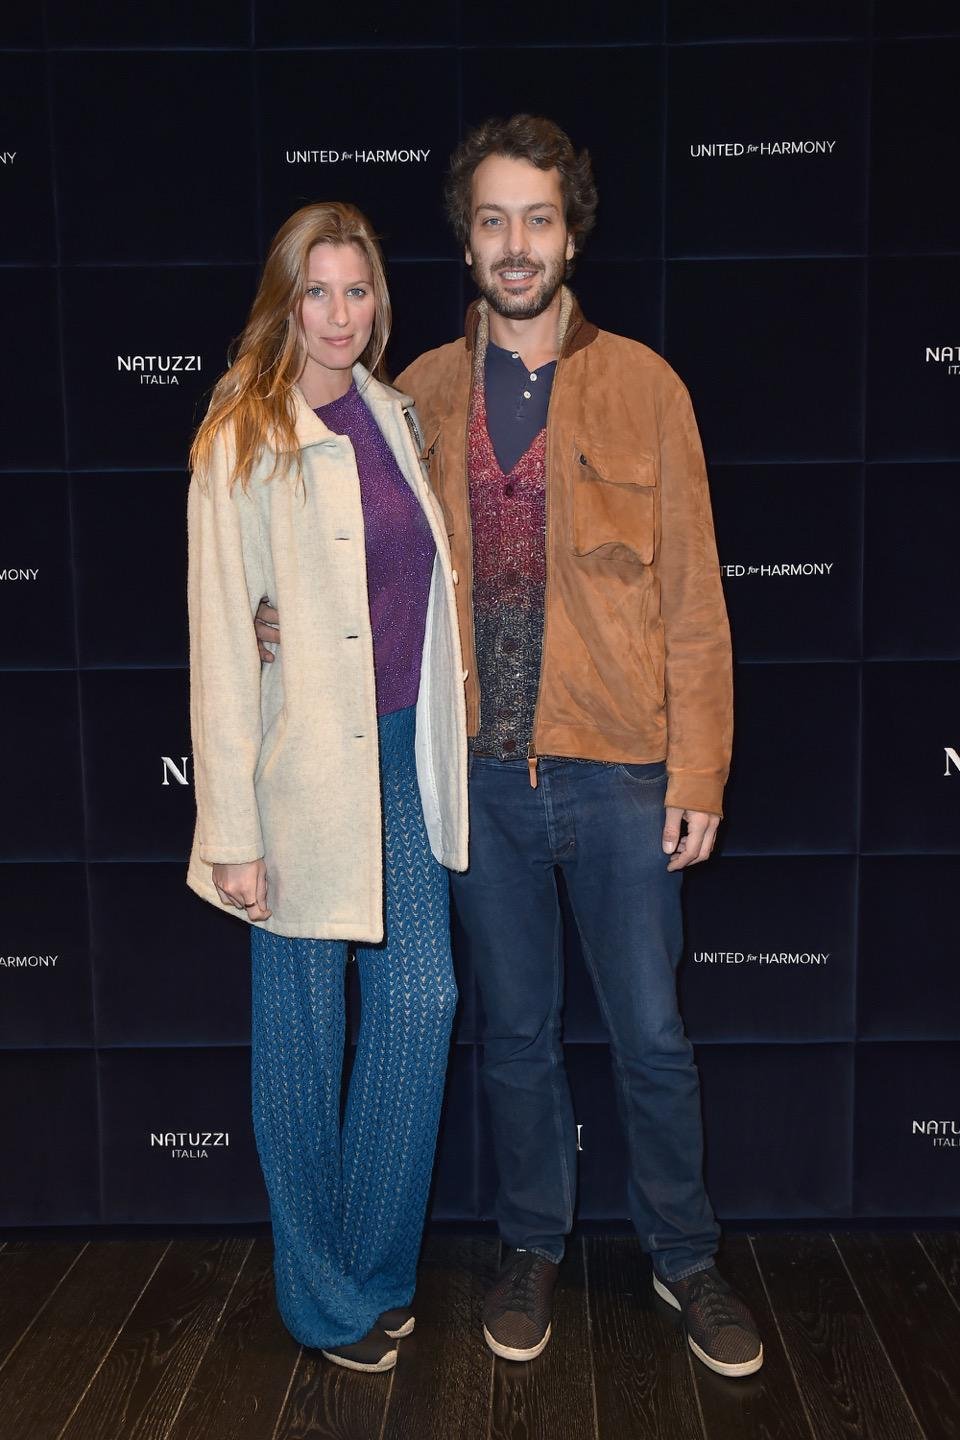 Natuzzi United for Harmony Cocktail Party